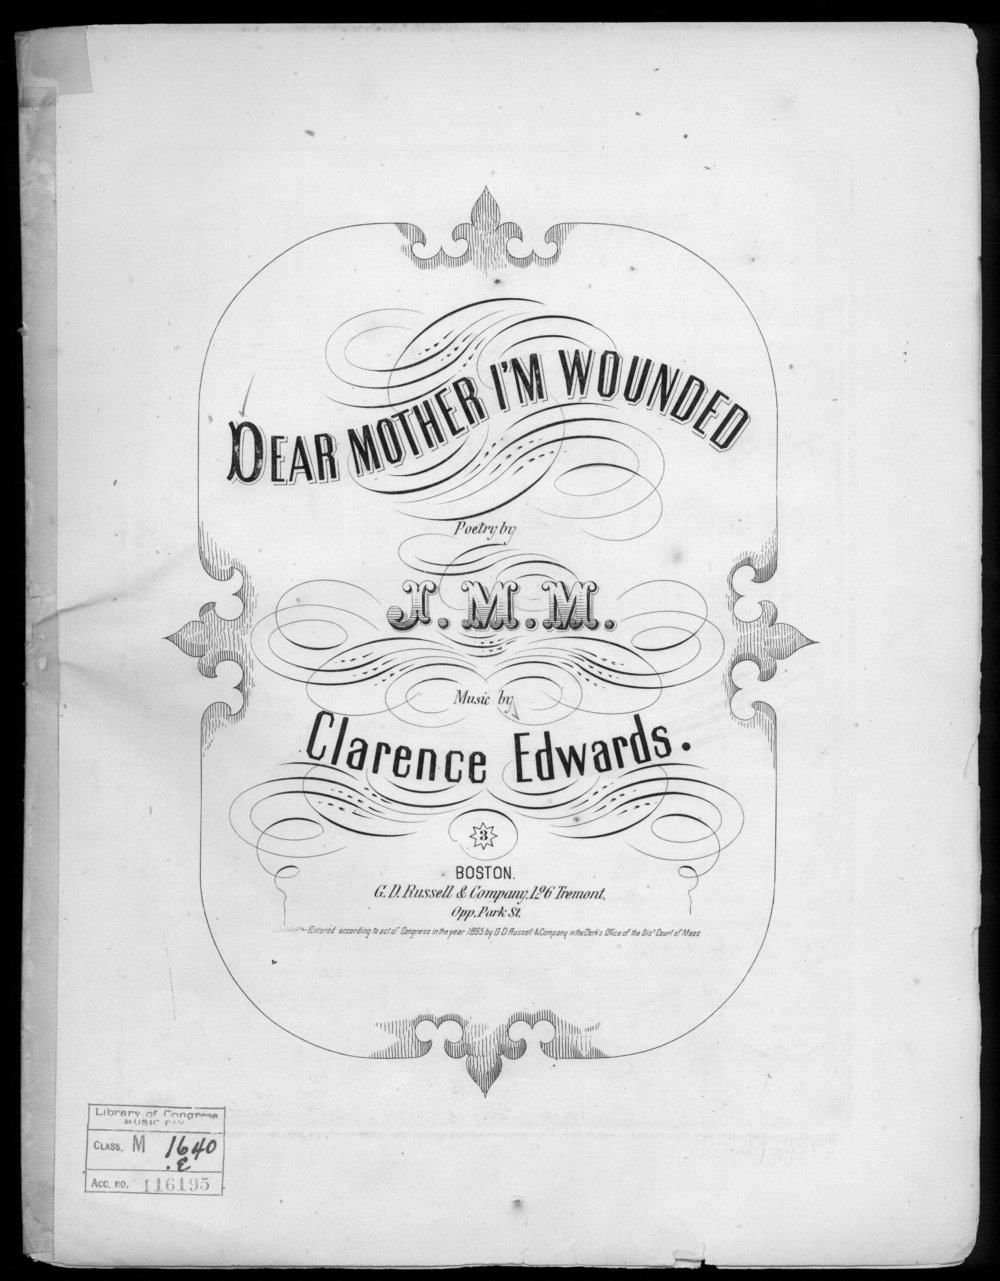 The war gave composers much to work with in the realm of churning out sad, patriotic music about the soldier's life, including their longing for the women in their lives while far from home.   Edwards, Clarence (composer); M., J. M. (lyricist). Published by G. D. Russell & Company, Boston, 1865. Courtesy of the Library of Congress.